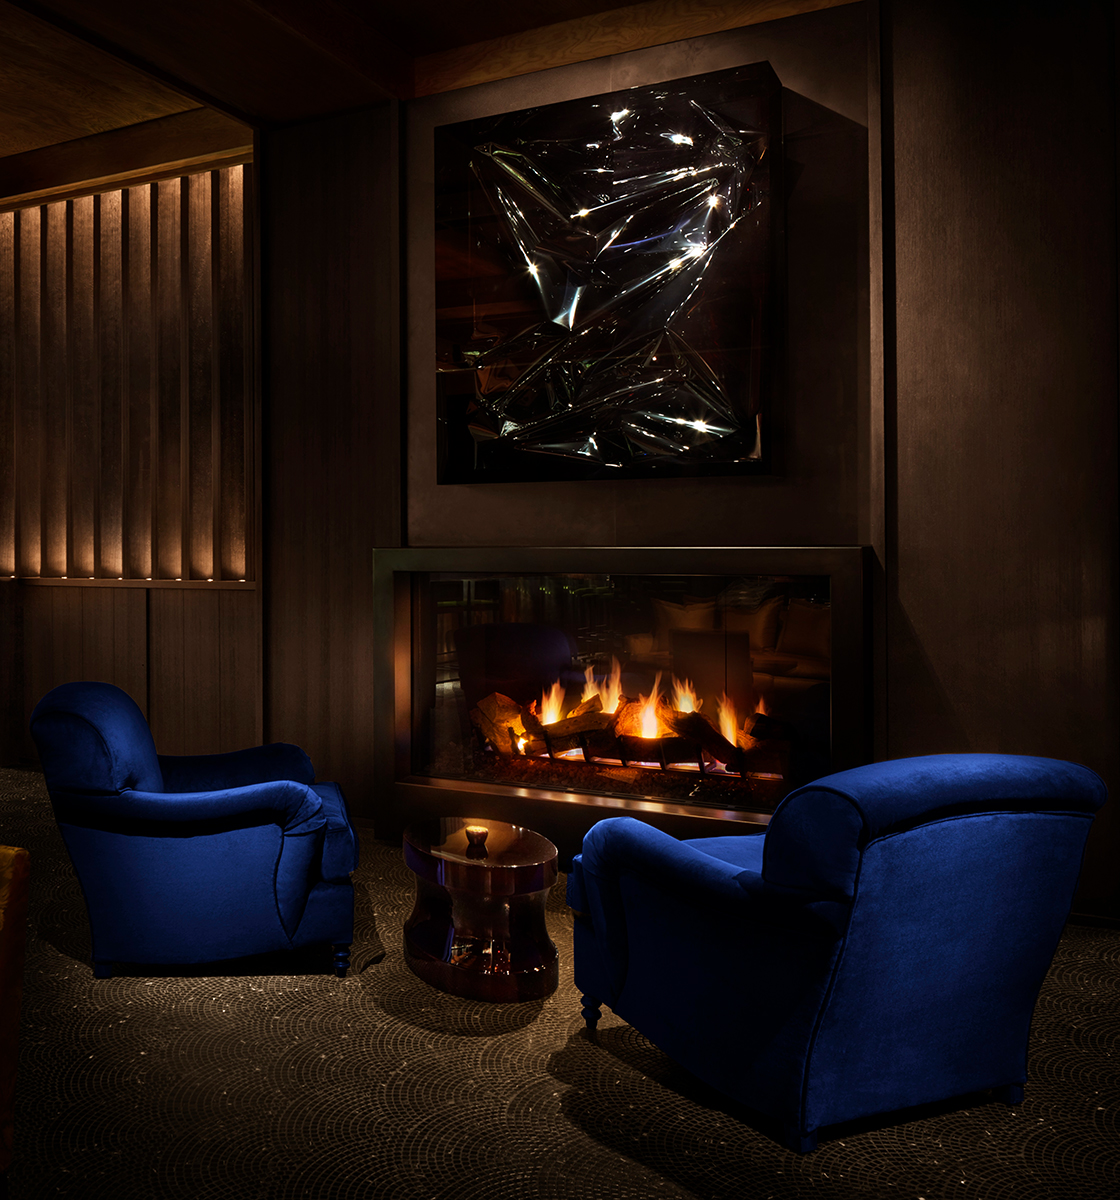 electric Blue Arm Chairs around fireplace with sliver sculpture above